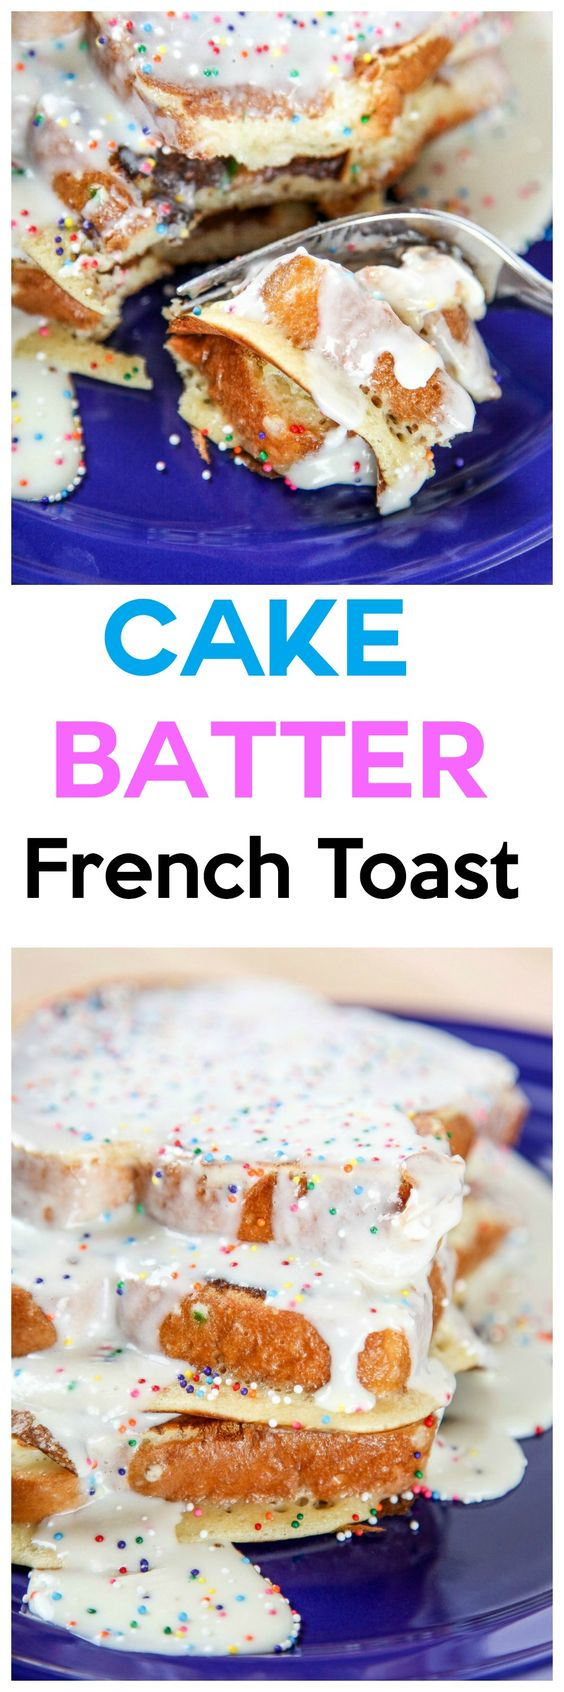 Cake Batter French Toast | Recipe | Cake Batter, French Toast and ...